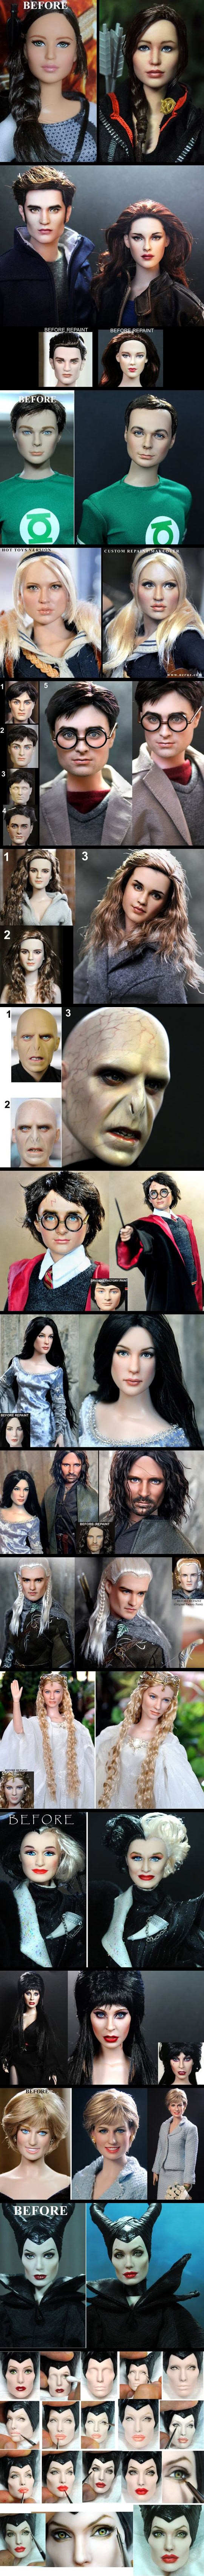 Terrible Dolls Turned Into Masterpieces